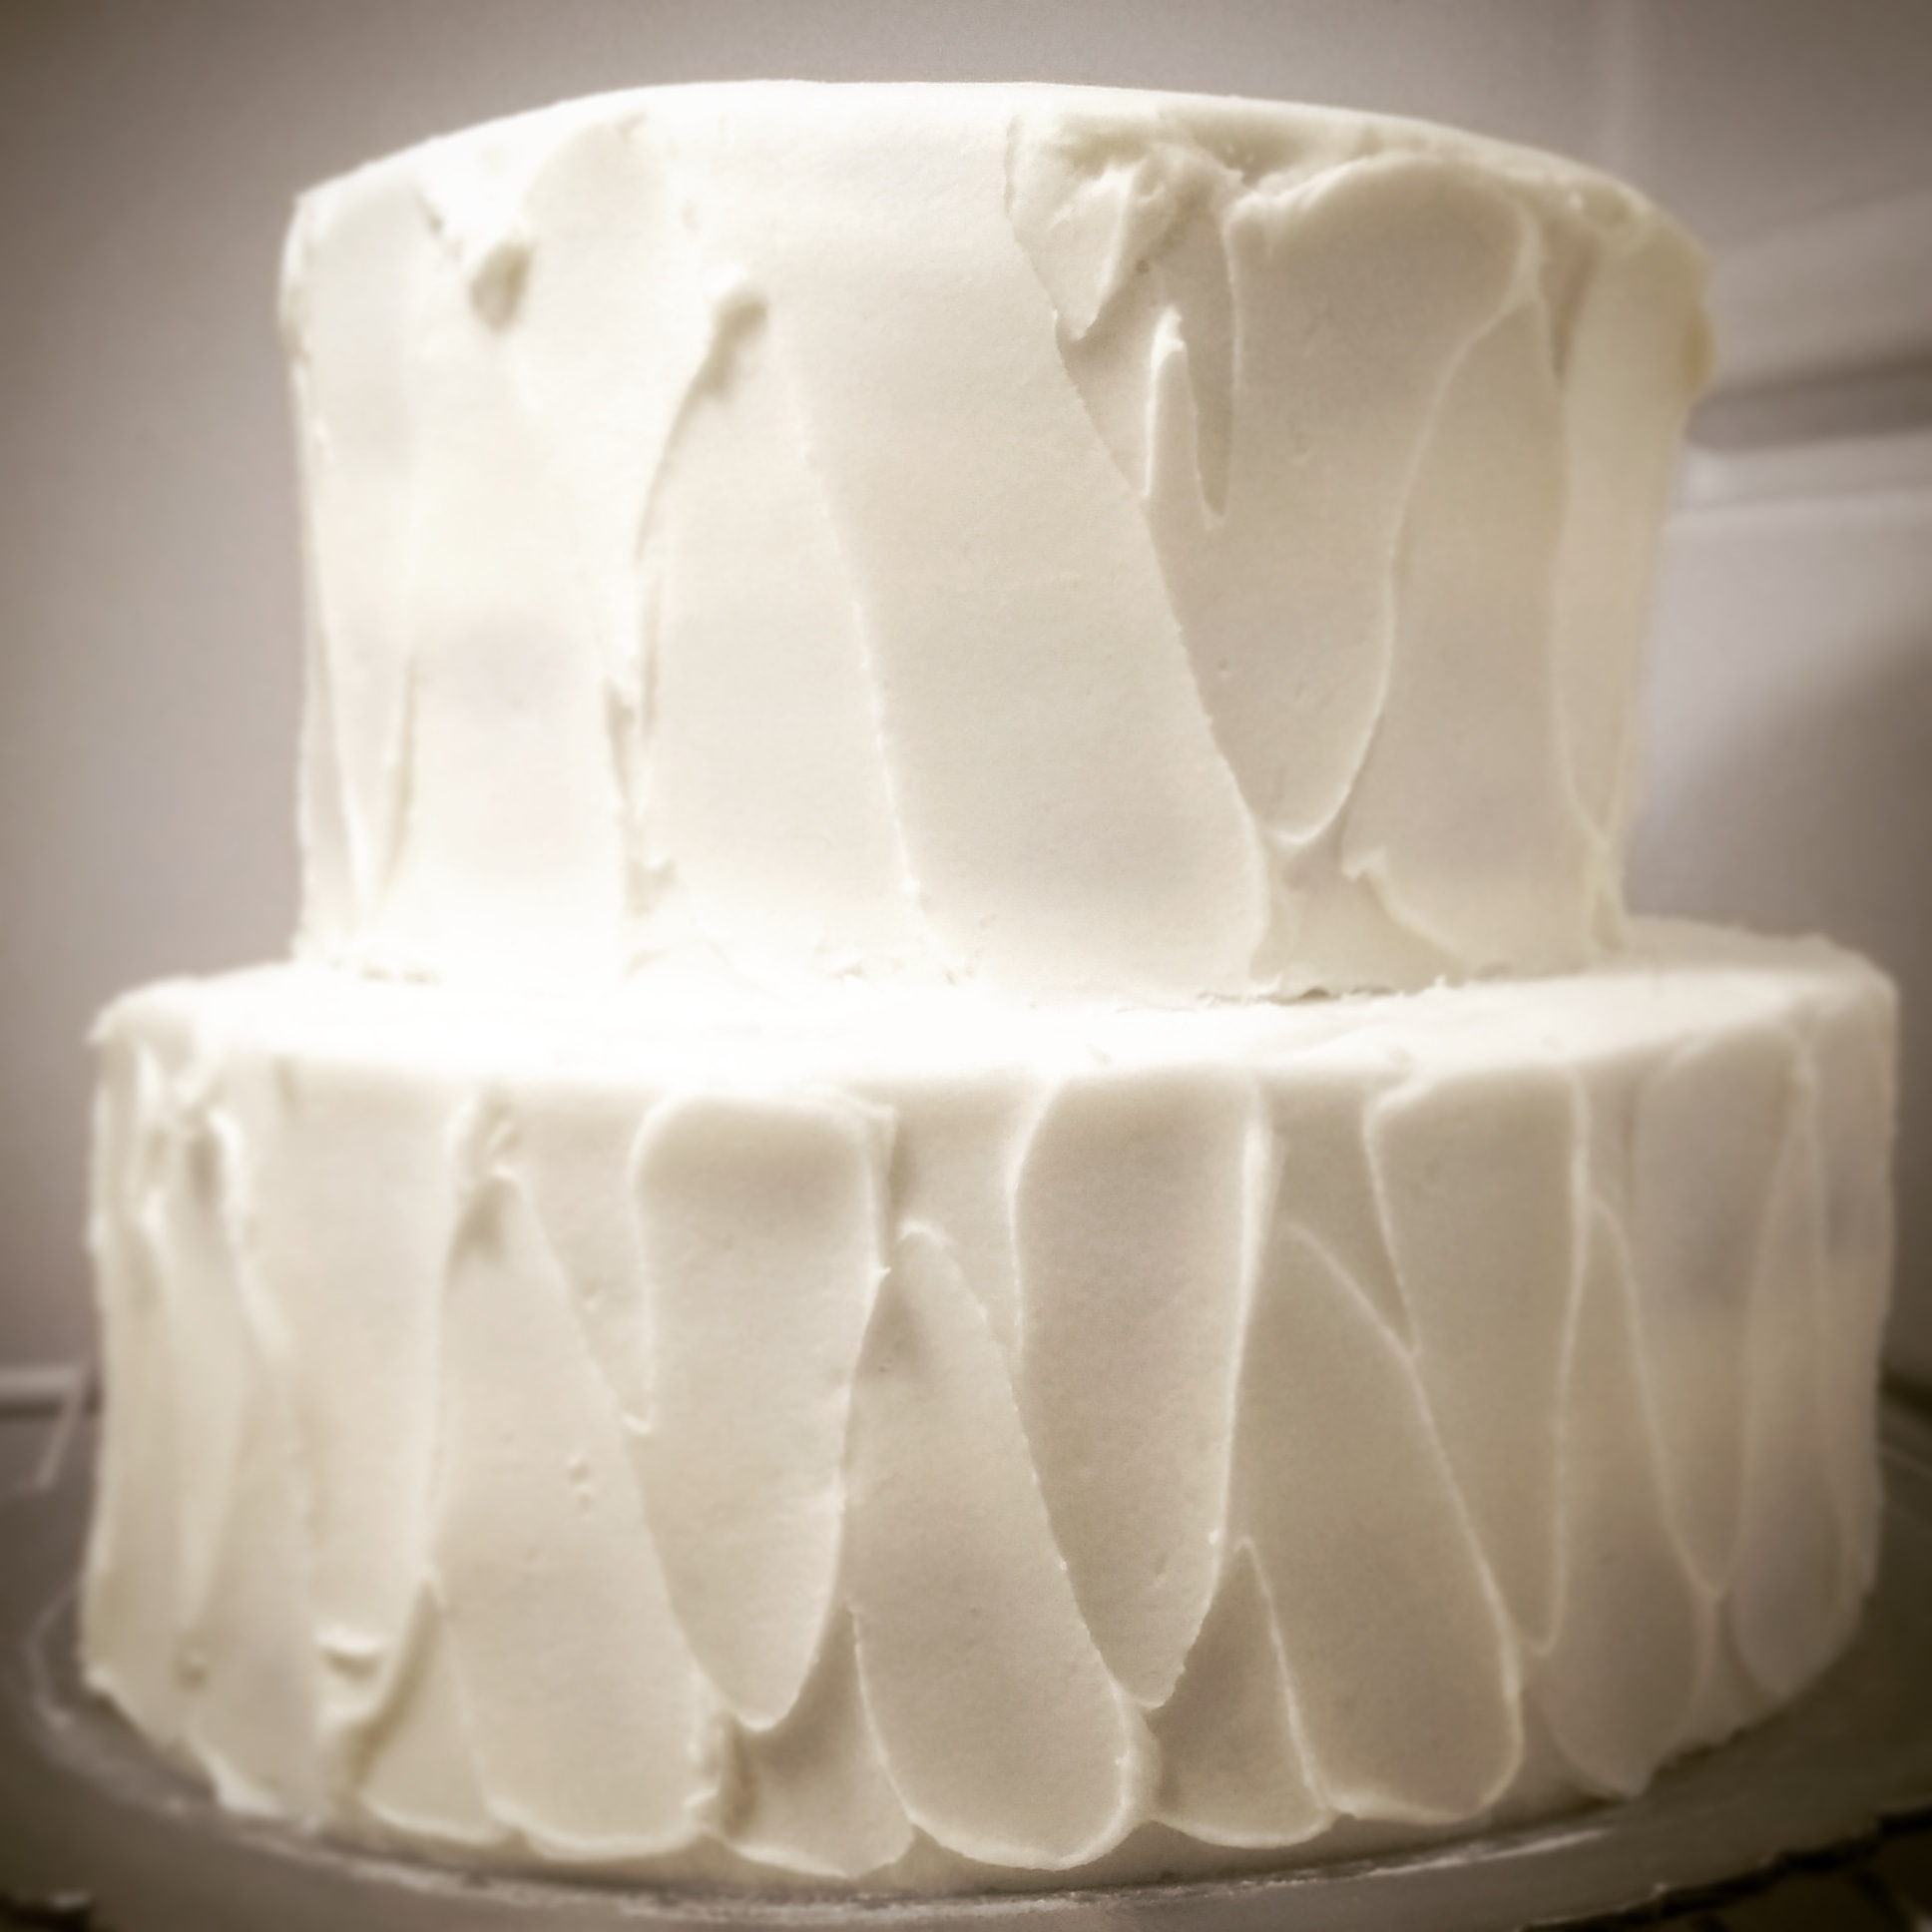 Cake showing swooped finished icing with no border